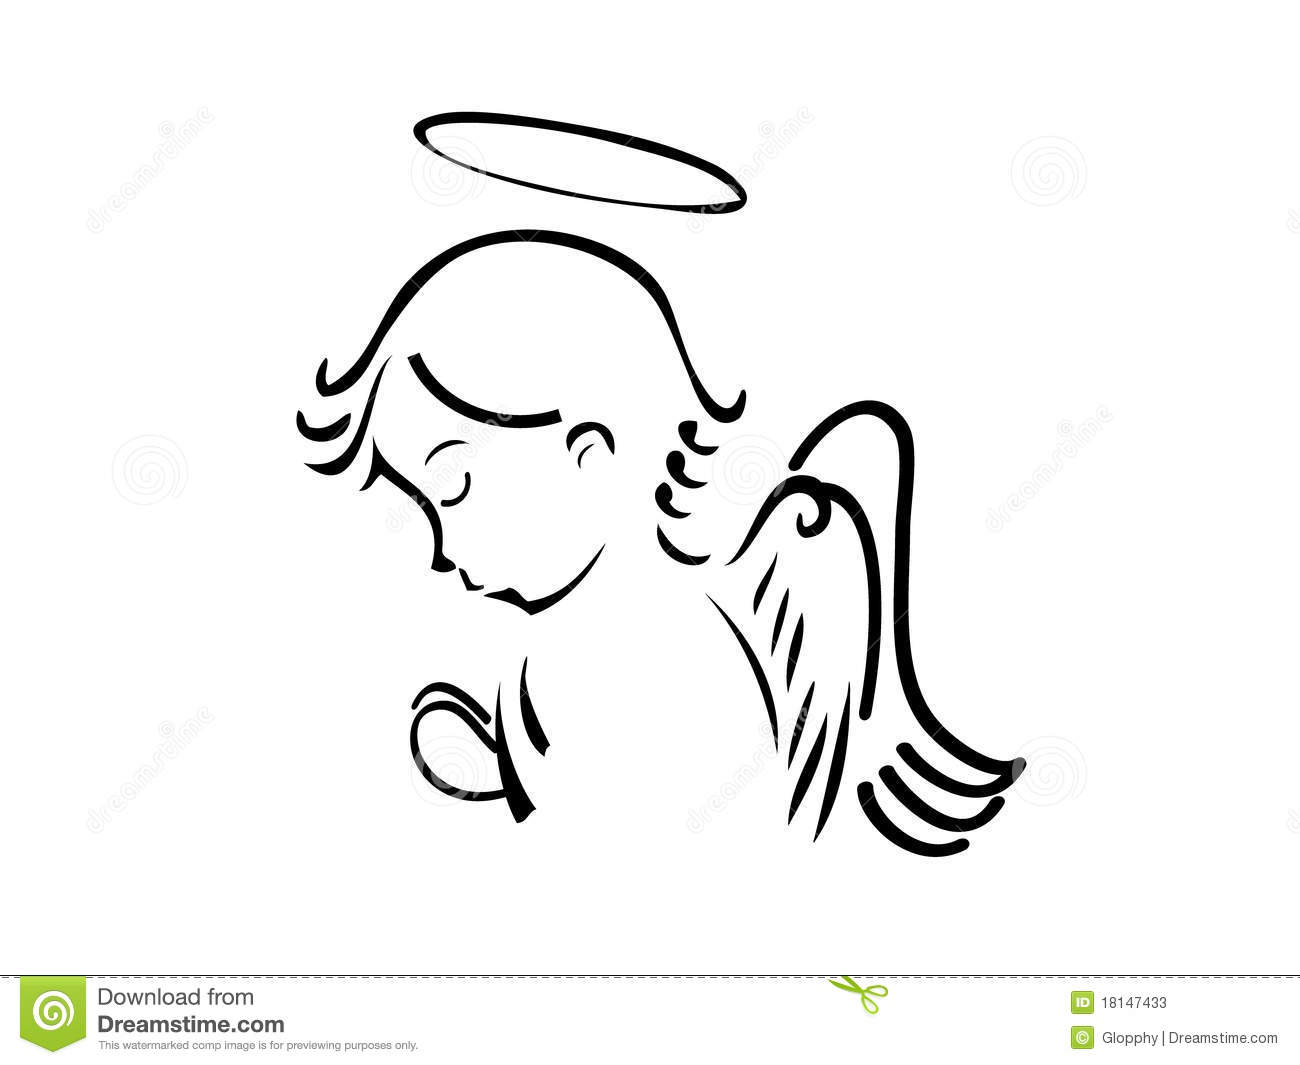 free black angel clipart - photo #29